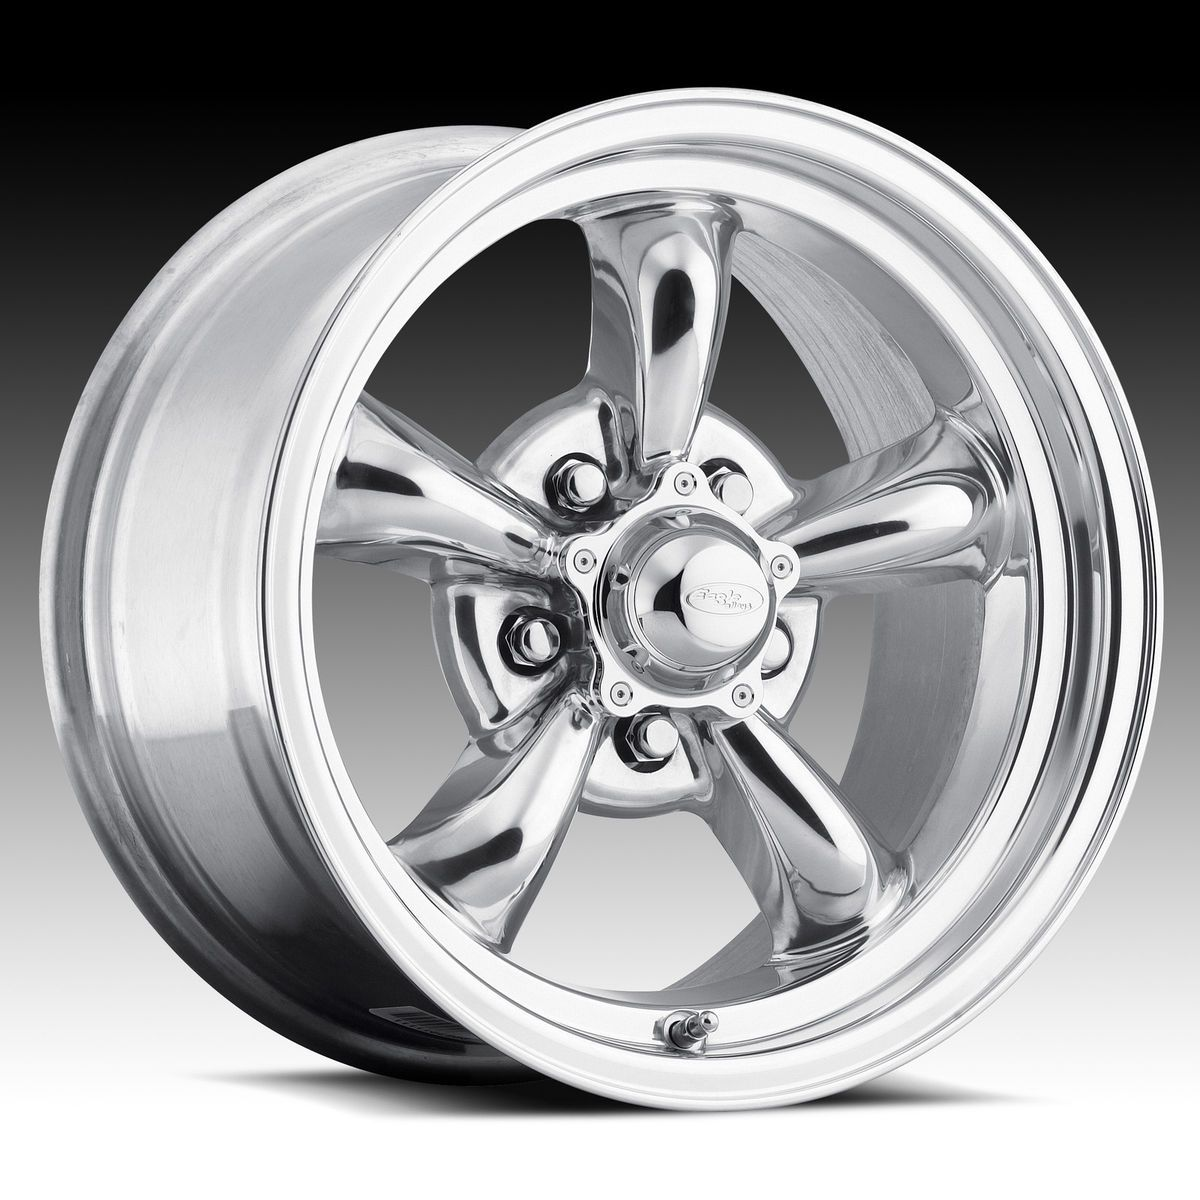 CPP Eagle 111 211 Wheels Rims 15x7 Fits Ford Mustang Galaxie Fairlane